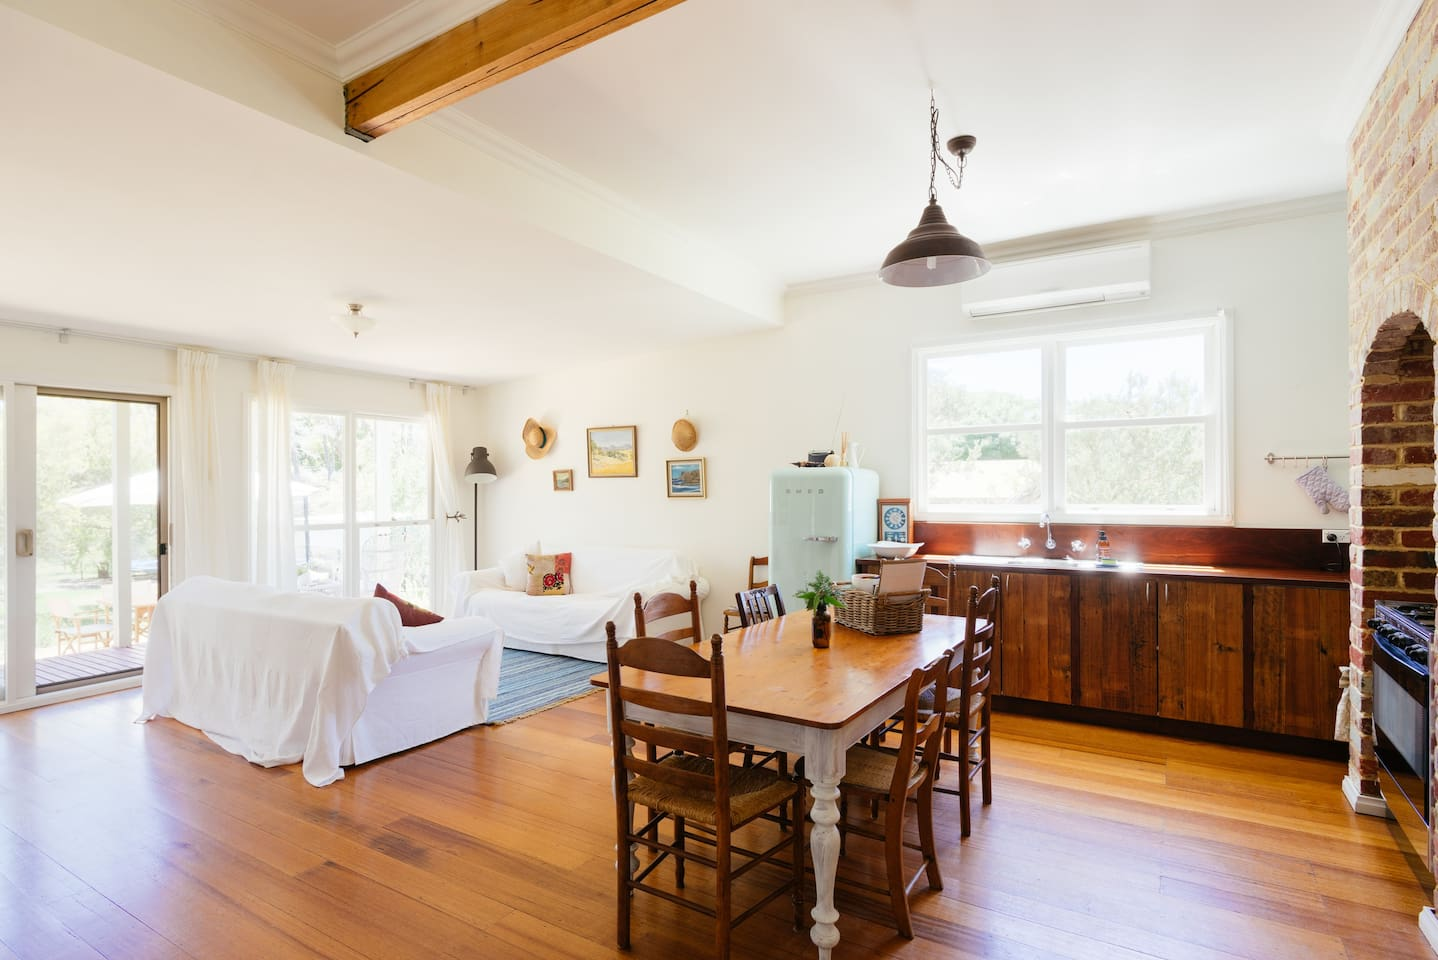 Sunny kitchen and main living area